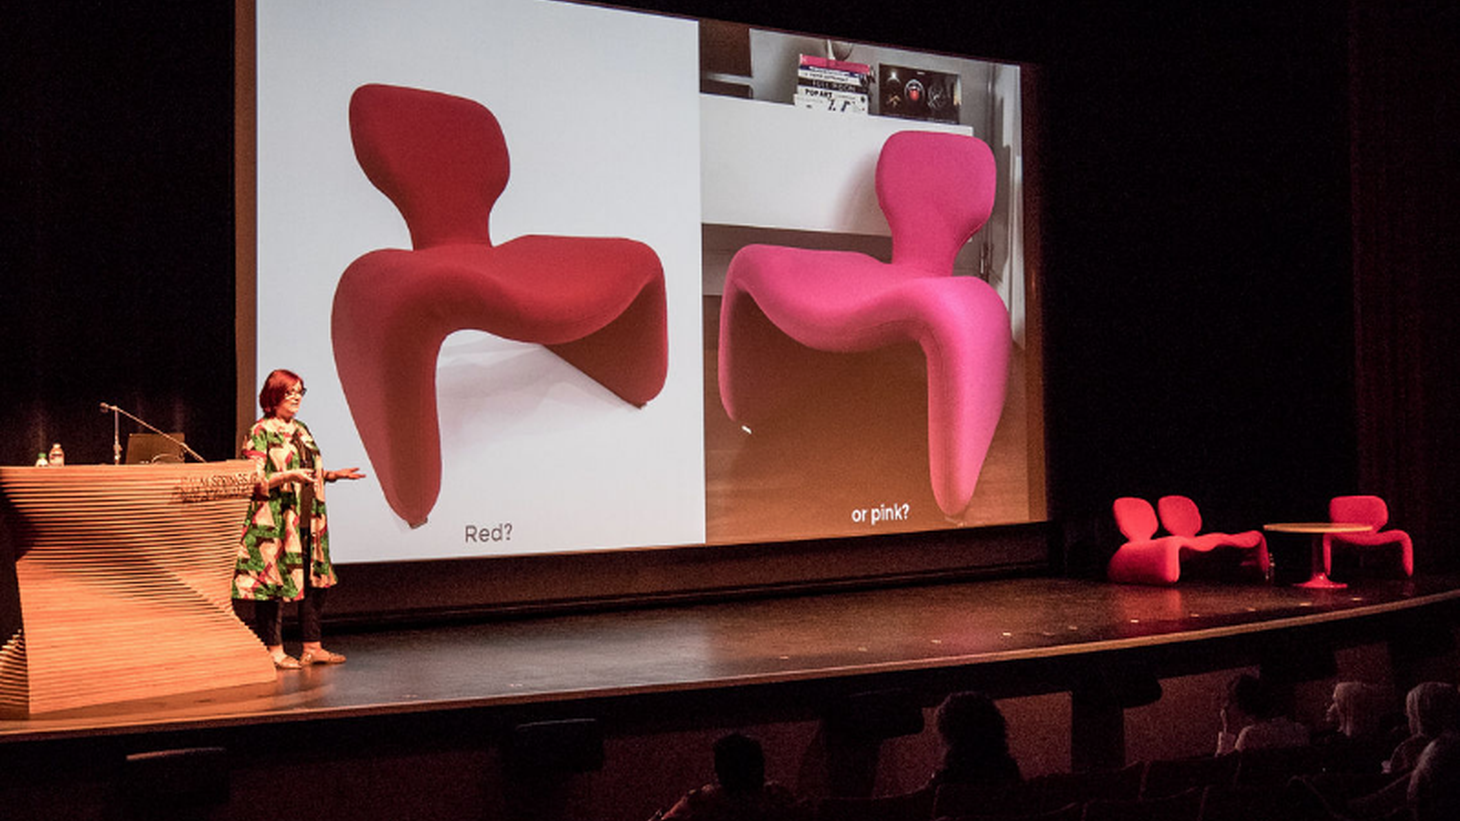 Paula Benson talks about why Stanley Kubrick chose the Djinn chairs, designed by Olivier Mourgue, for 2001: A Space Odyssey.